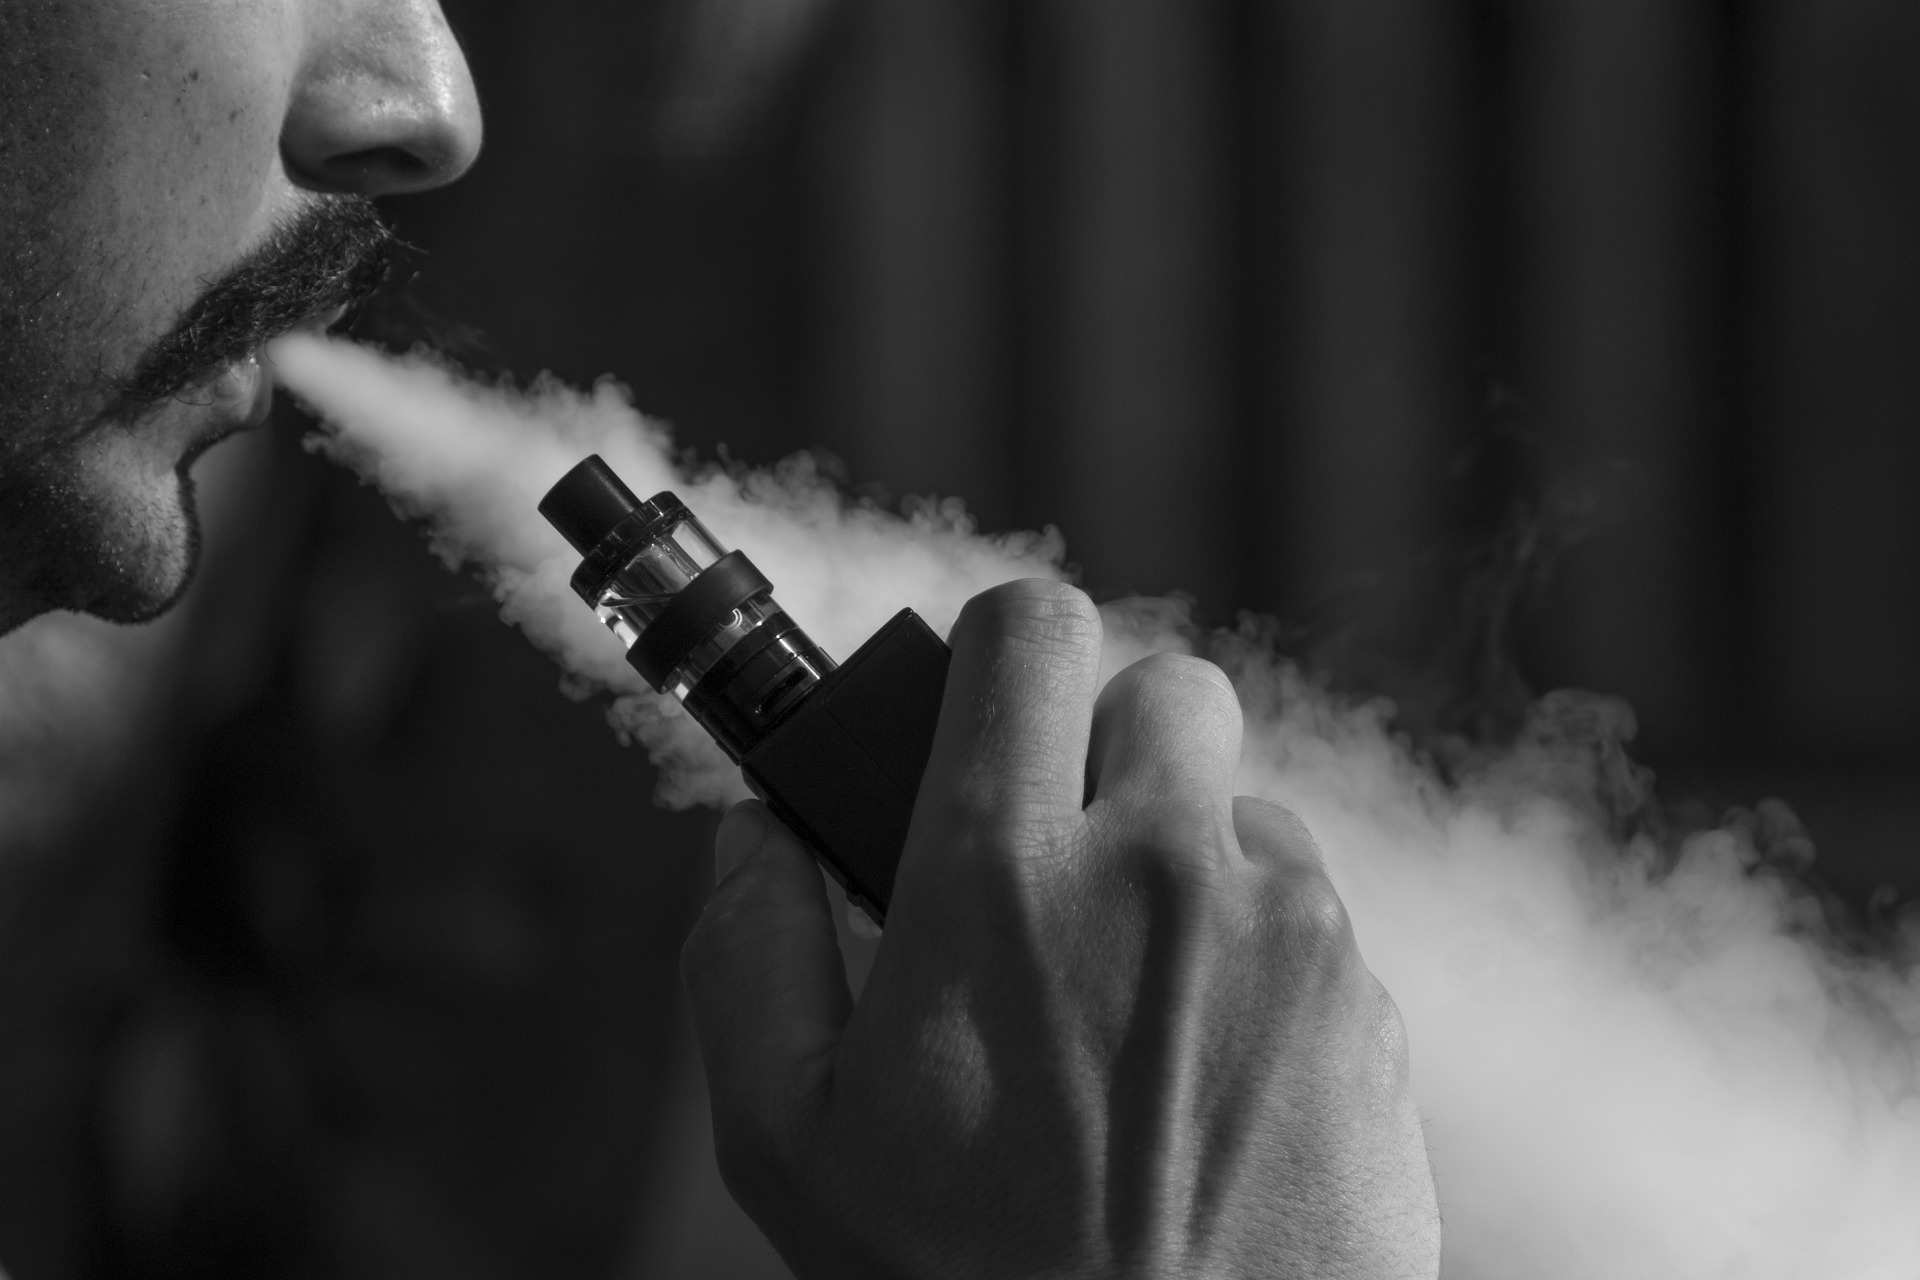 How To Find The Best Online Vaporizer UK